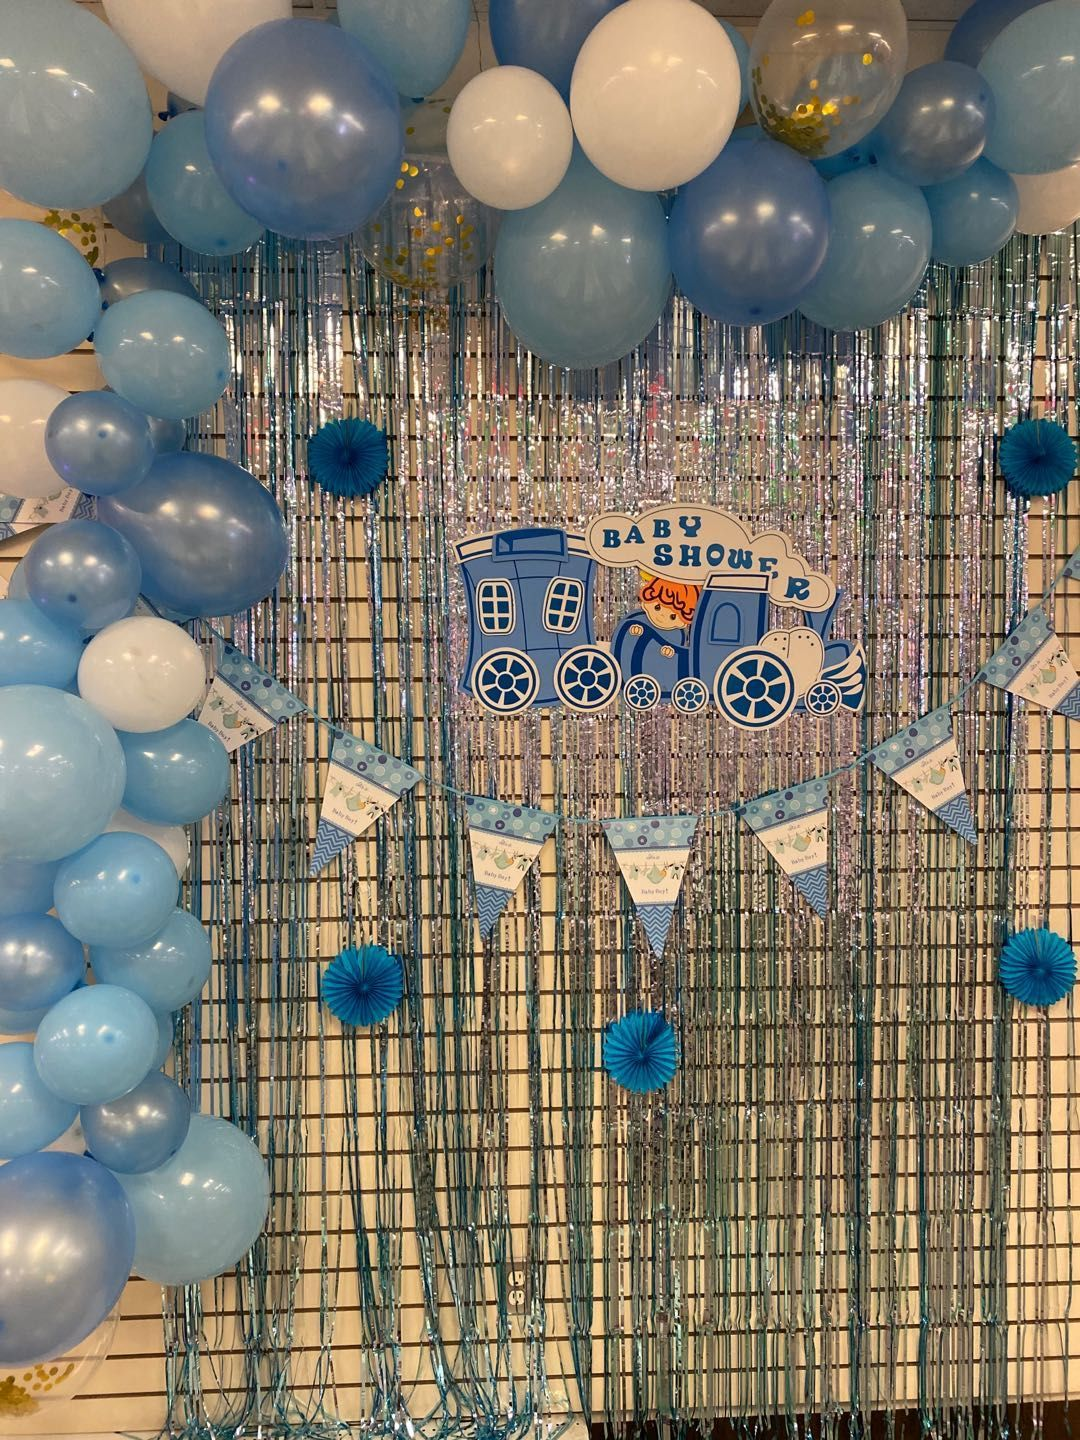 5pcs//set Baby Shower 1st Birthday Foil Balloons Party Wall Backdrop Decor